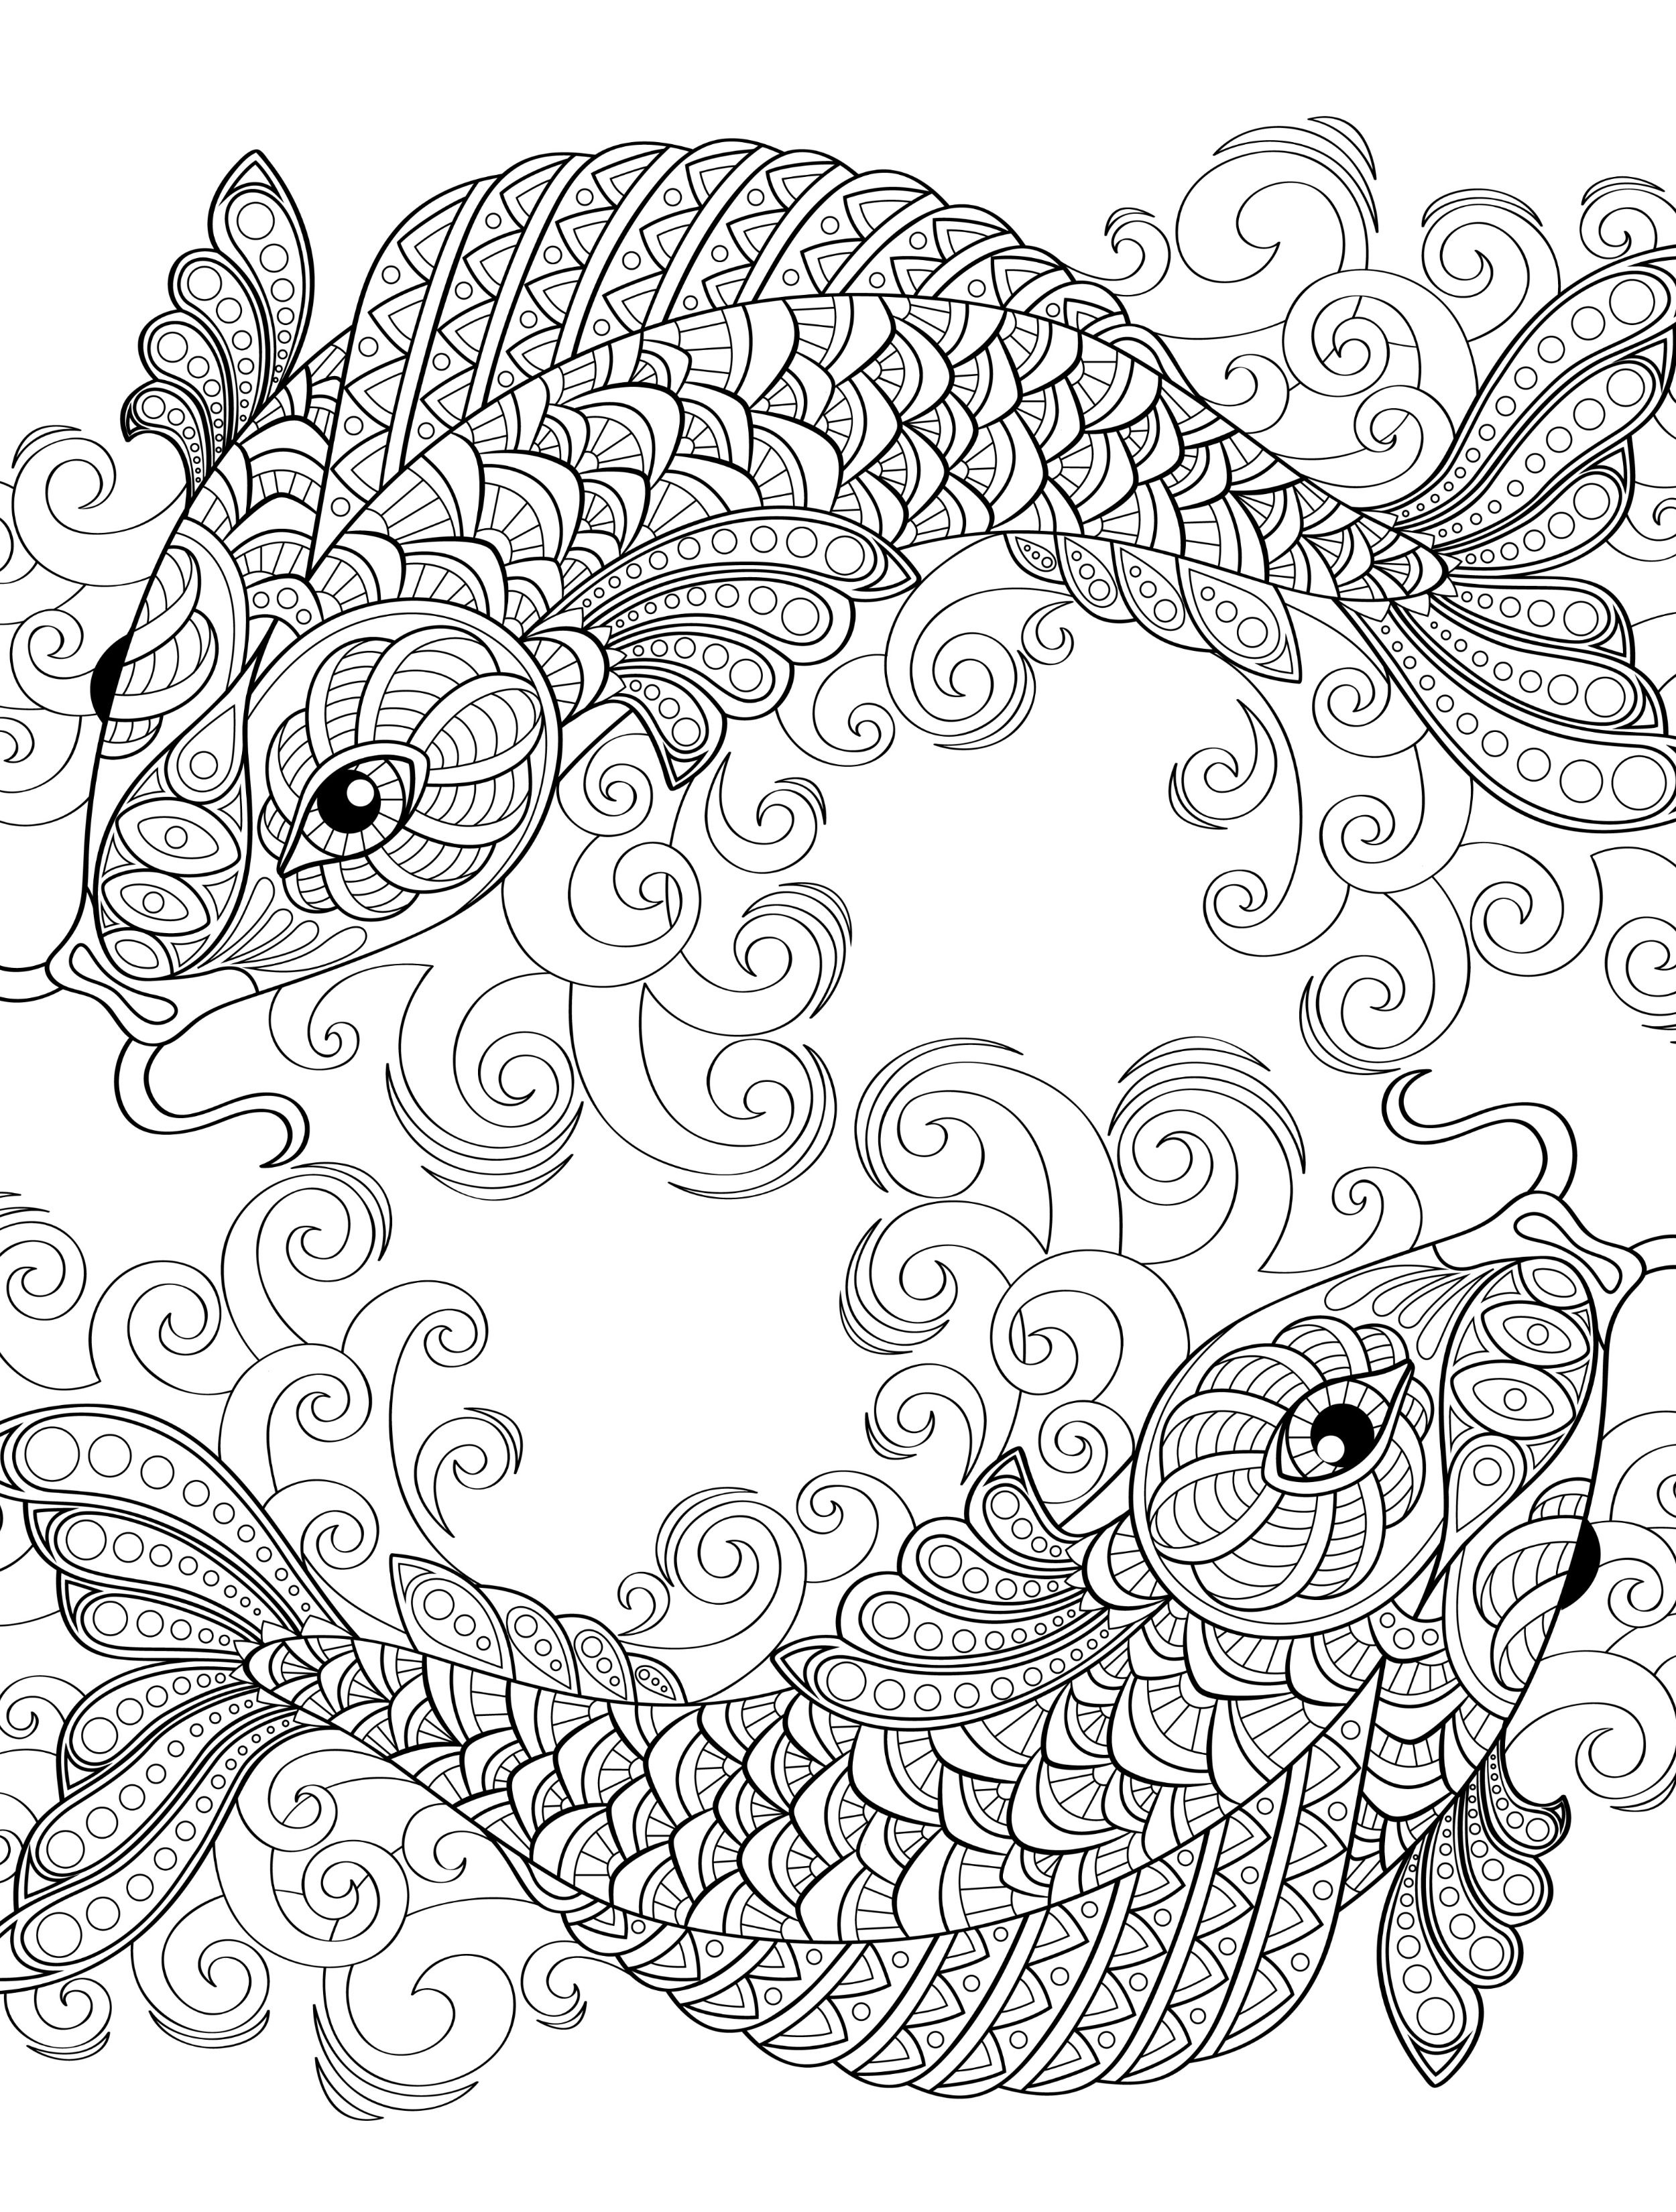 18 Absurdly Whimsical Adult Coloring Pages (With images ... | cool coloring pages for adults printable